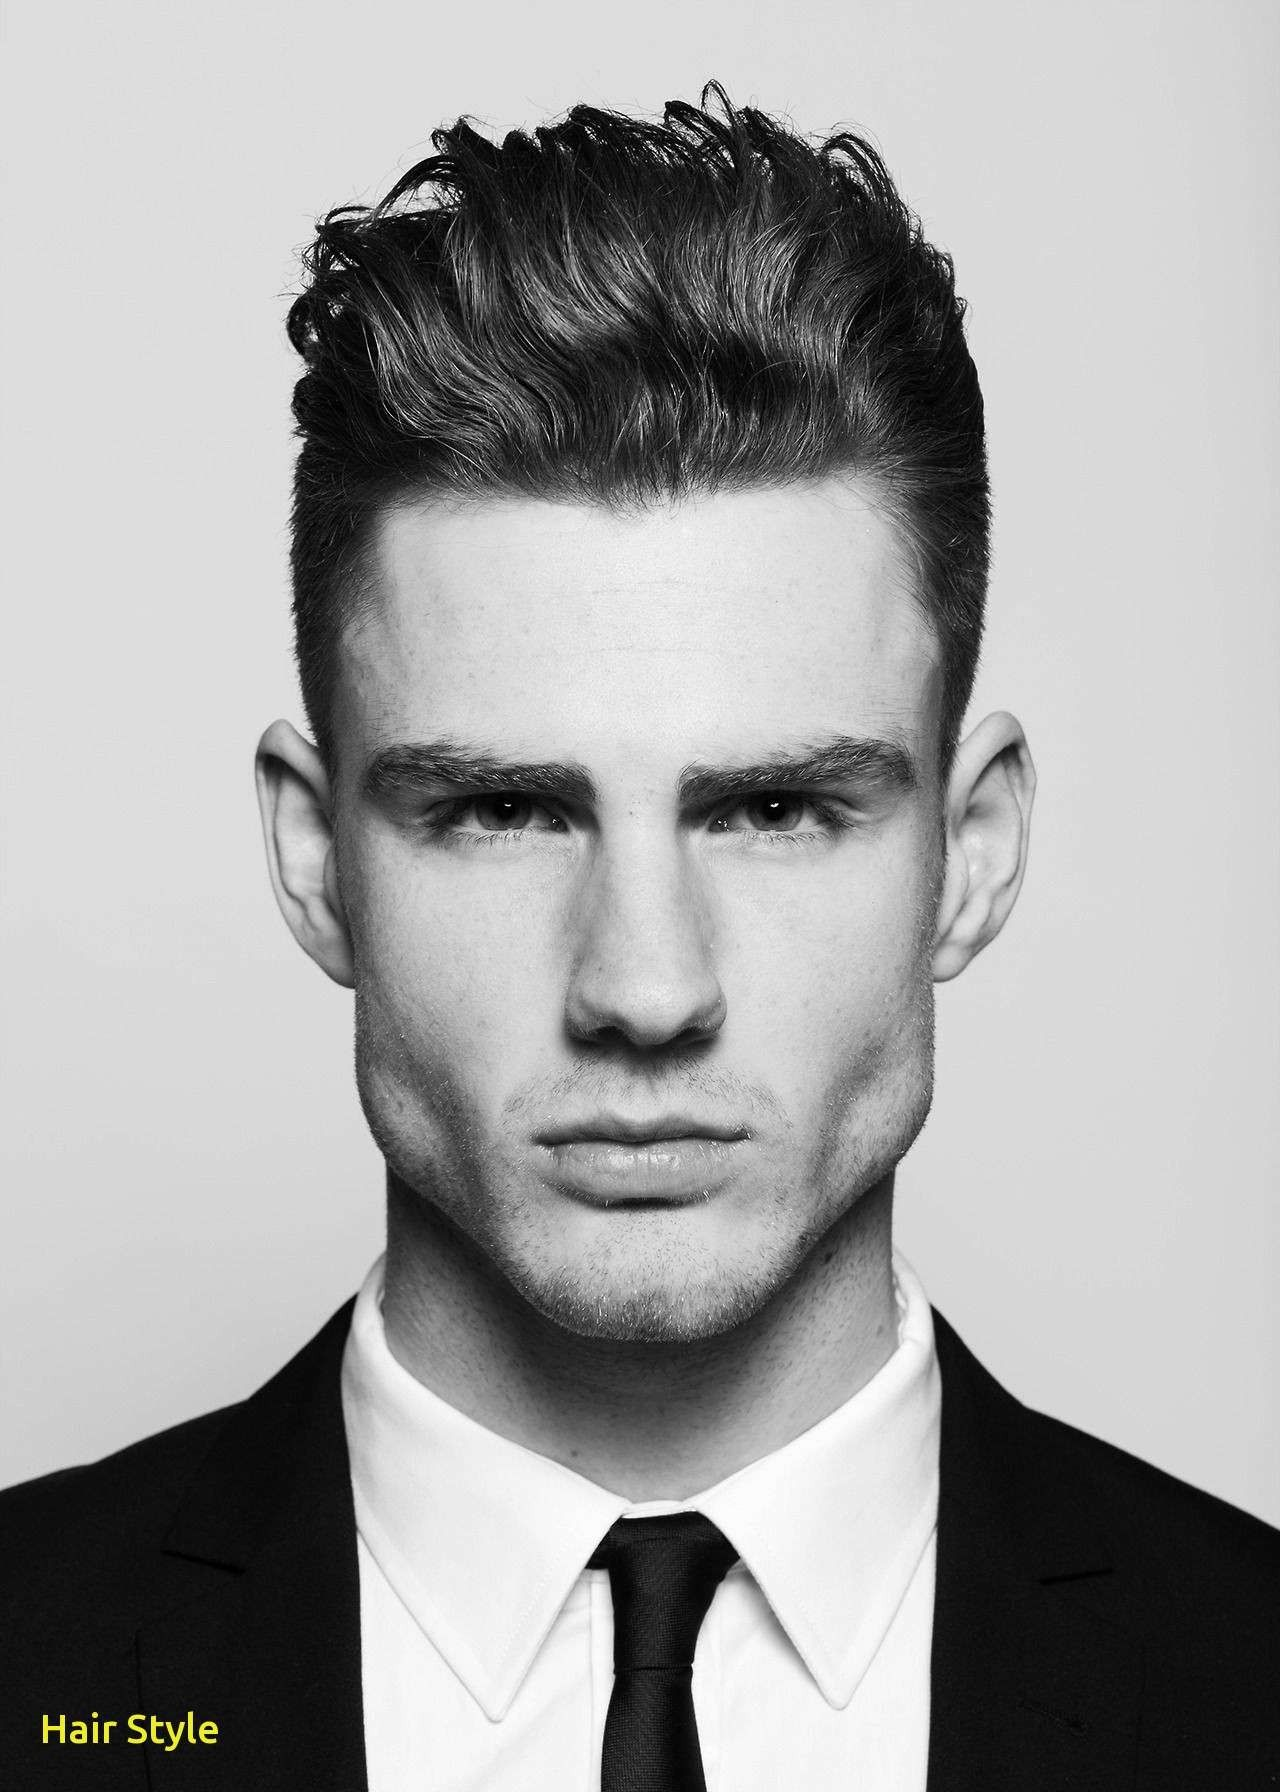 Haircut for thin hair men newest hairstyles  men in   best hair style men  pinterest